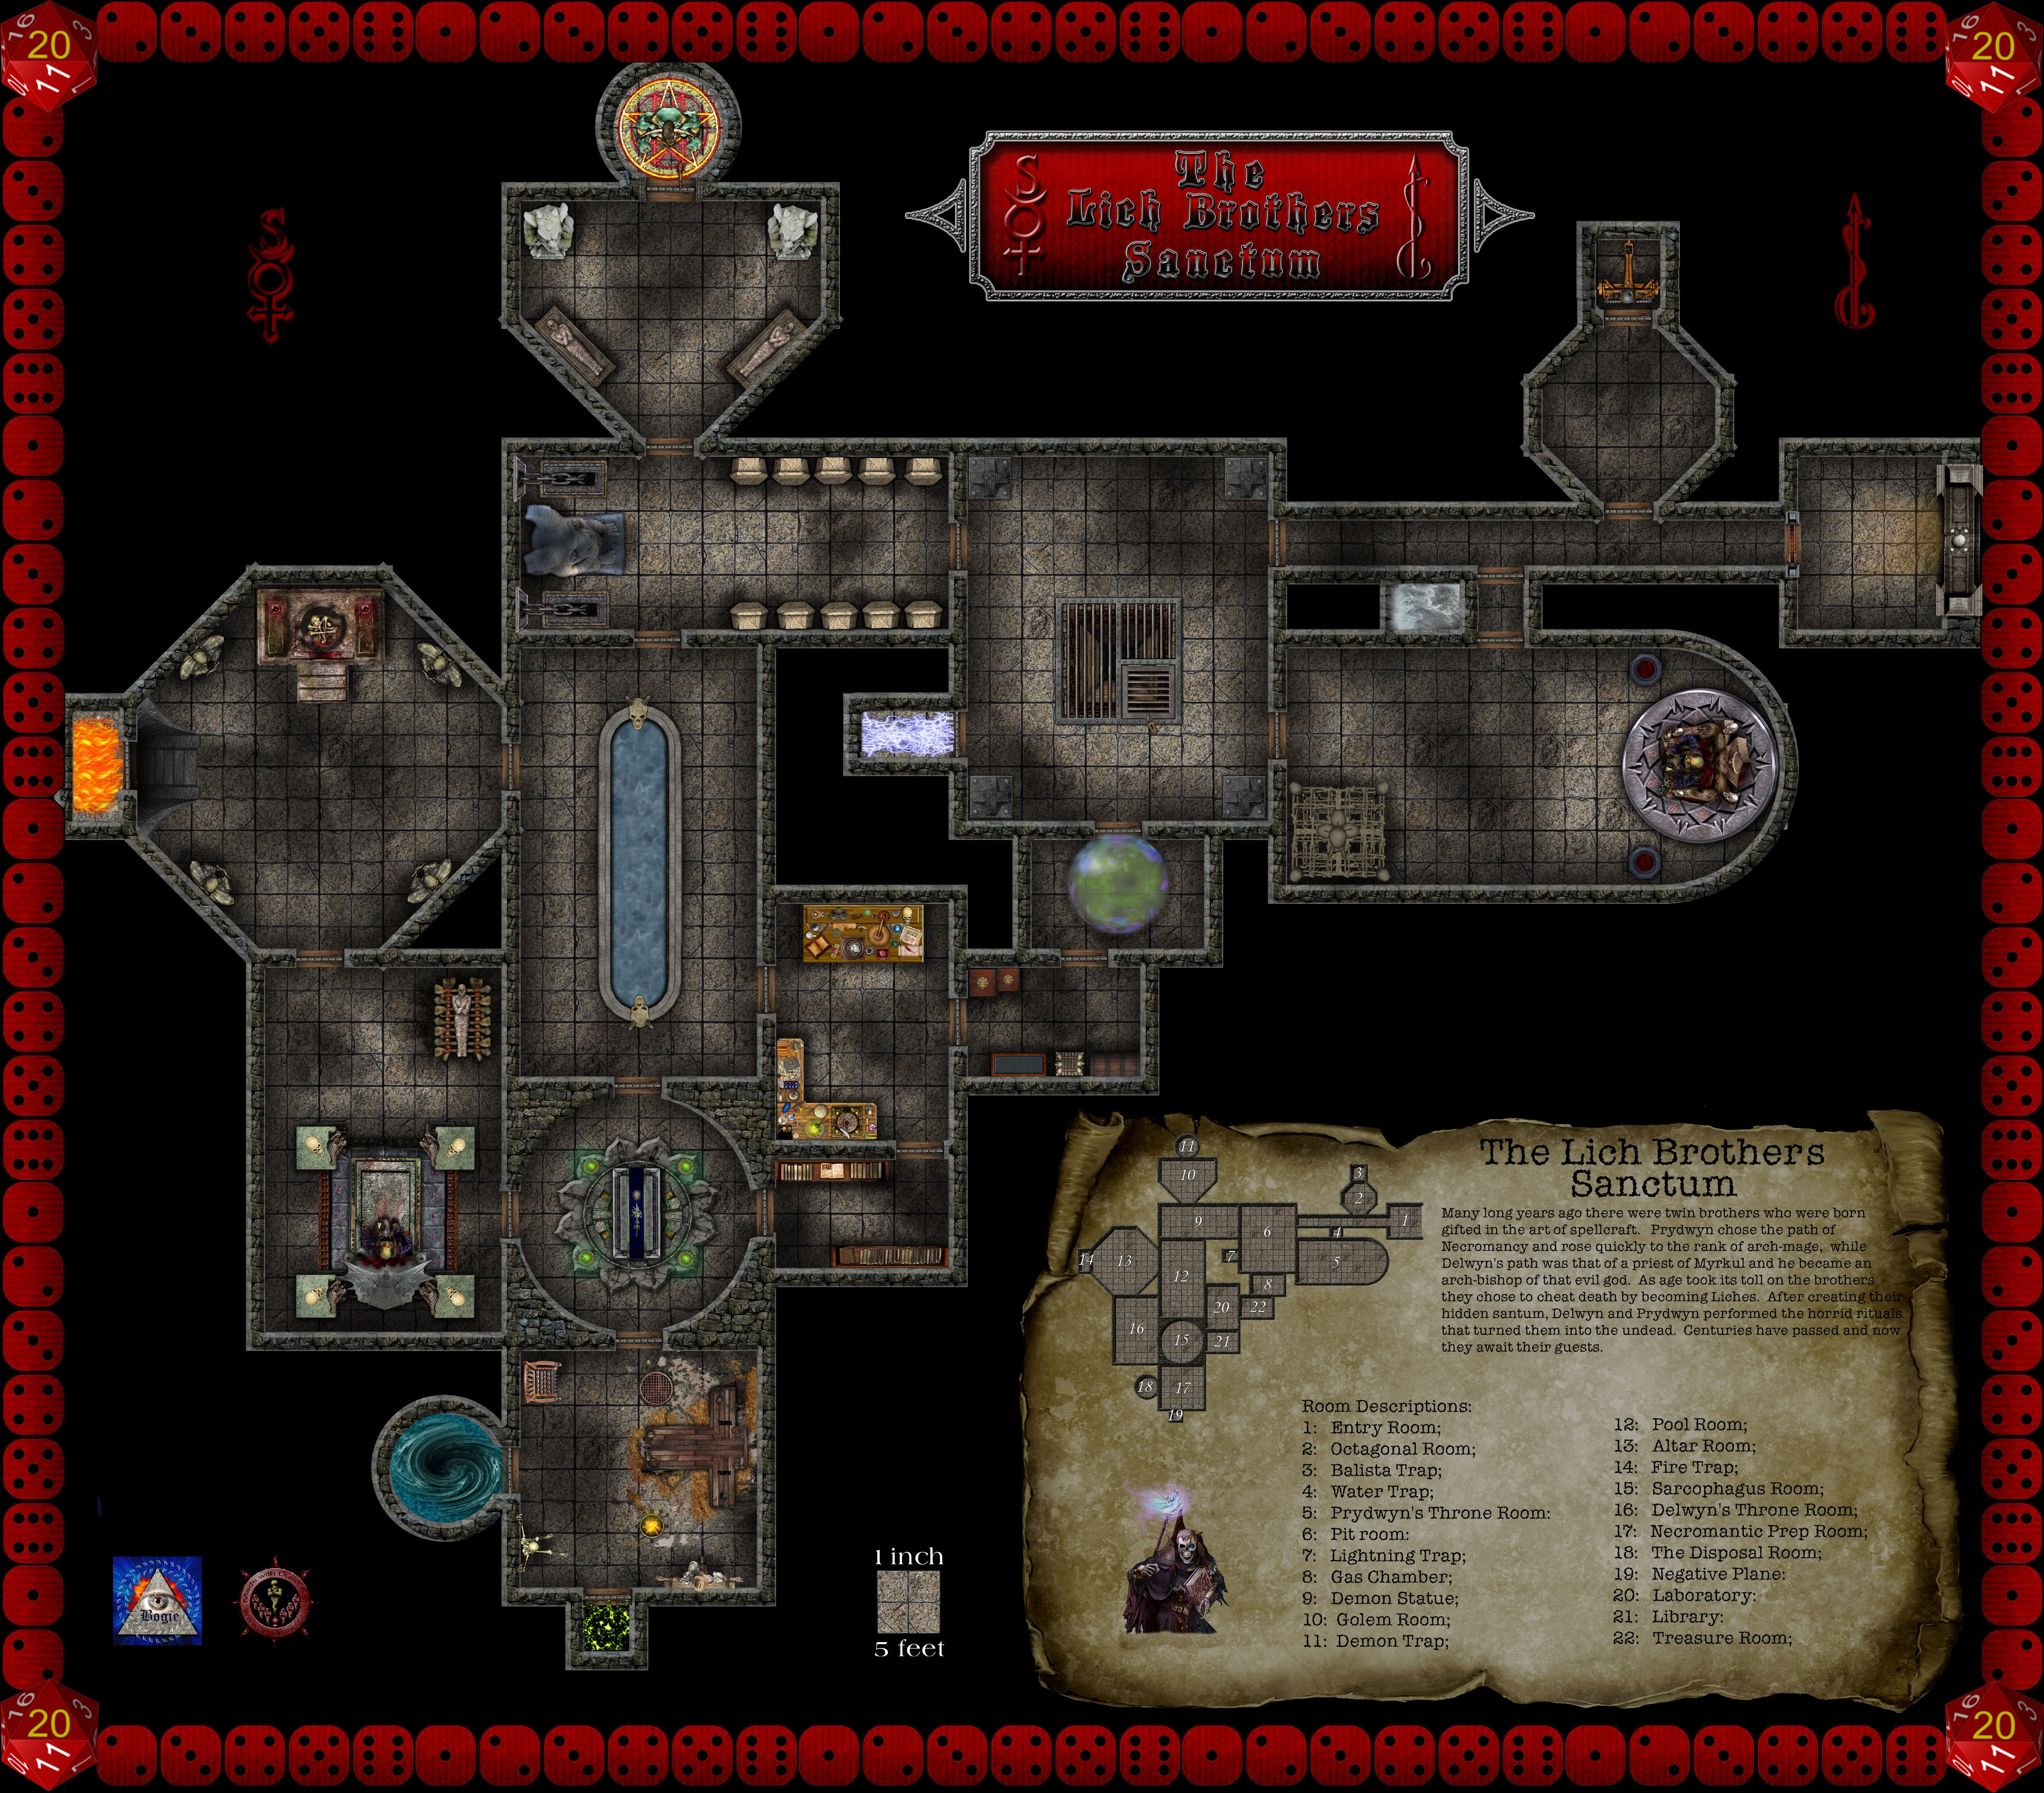 View photo fantasy maps pinterest view photos rpg and dungeon a website and forum for enthusiasts of fantasy maps mapmaking and cartography of all types we are a thriving community of fantasy map makers that provide gumiabroncs Gallery